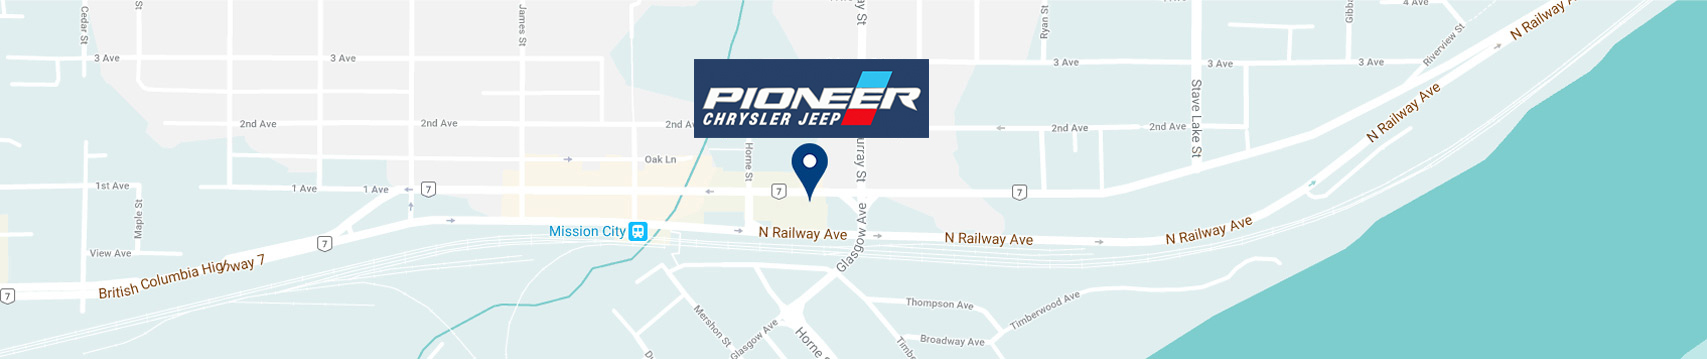 Pioneer Chrysler Jeep Map